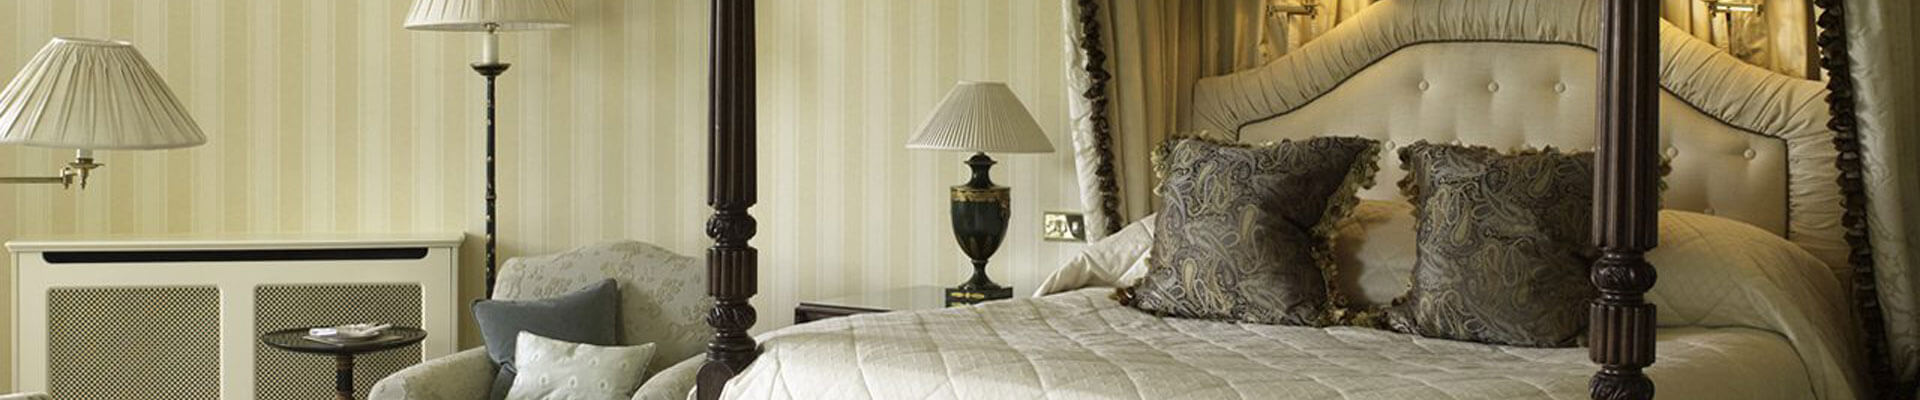 Photo of one of the bedroom suites at Lucknam Park